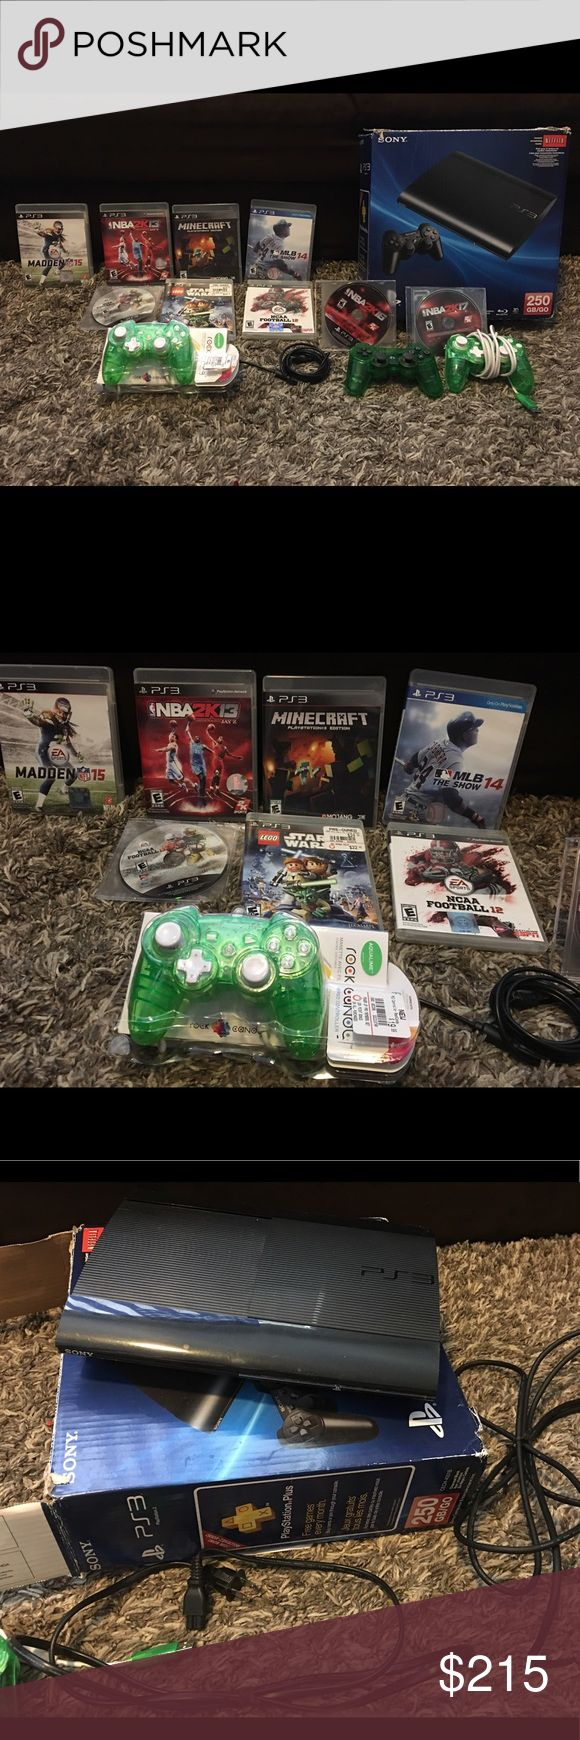 Ps3 16pc bundle package 16pc PS3 bundle for sale. You will recieve: 1 rocket candy green PlayStation 3 controller 1 rocket candy green PlayStation controller, used but still has the original box 1 wireless green PlayStation 3 controller 1 charging cord for the controller 1 power adapter 1 USB cord 1 PlayStation 3 console video game system MLB the show 2014 Minecraft NBA 2K13 Madden 15 NCAA football 2013 Lego Star Wars NCAA football 2012 NBA 2K16 – no case NBA 2K17 – no case sony Accessories